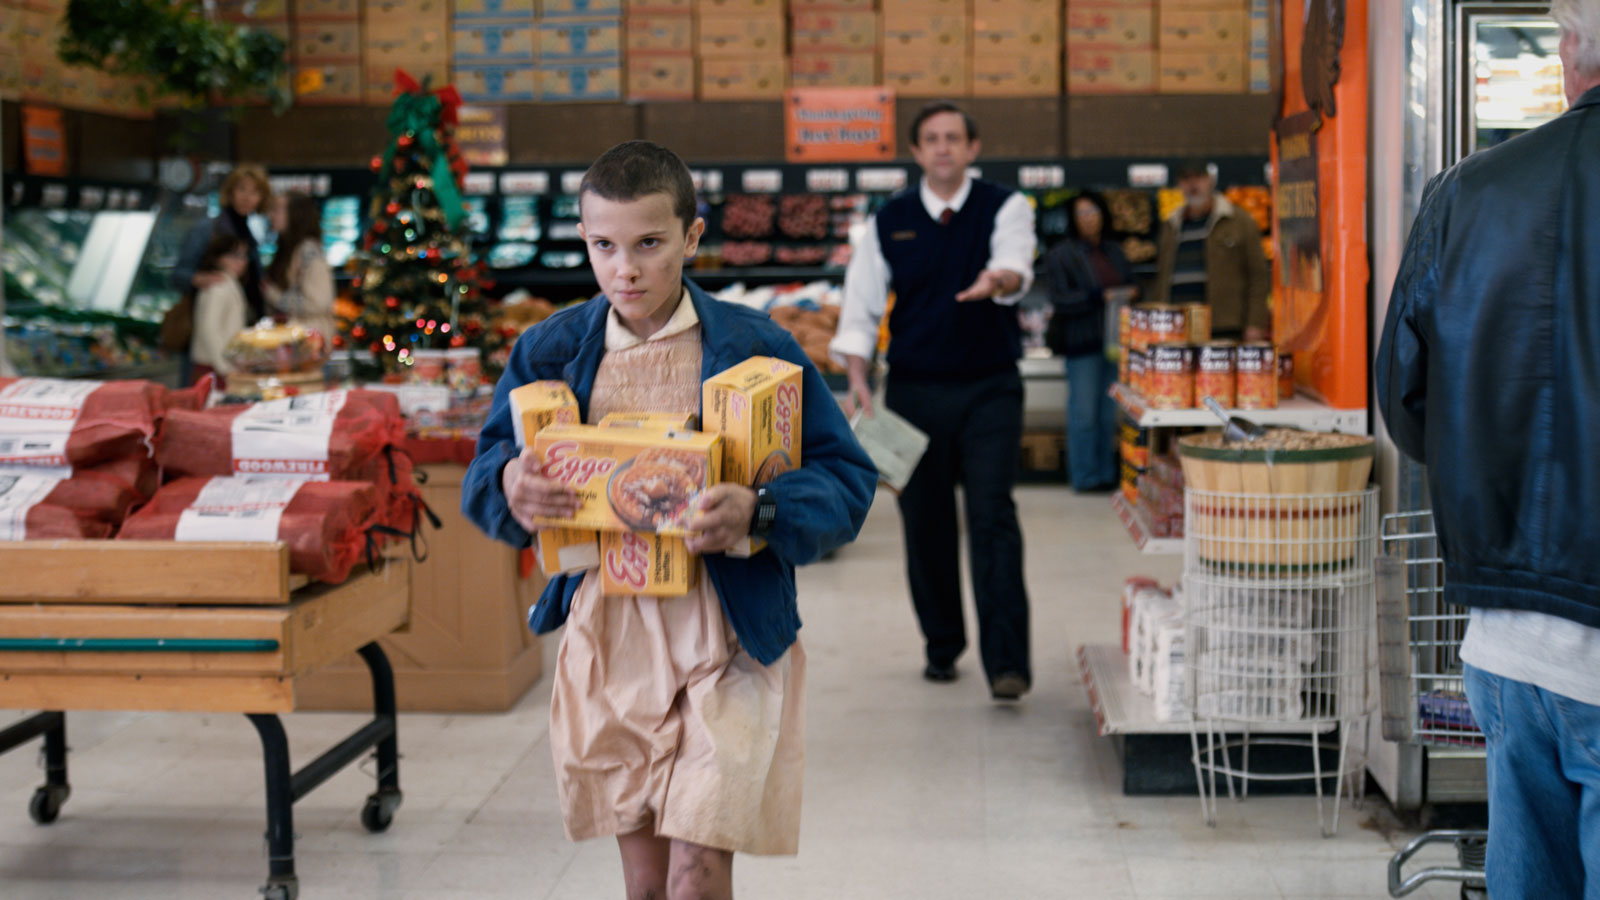 Eleven and Eggos